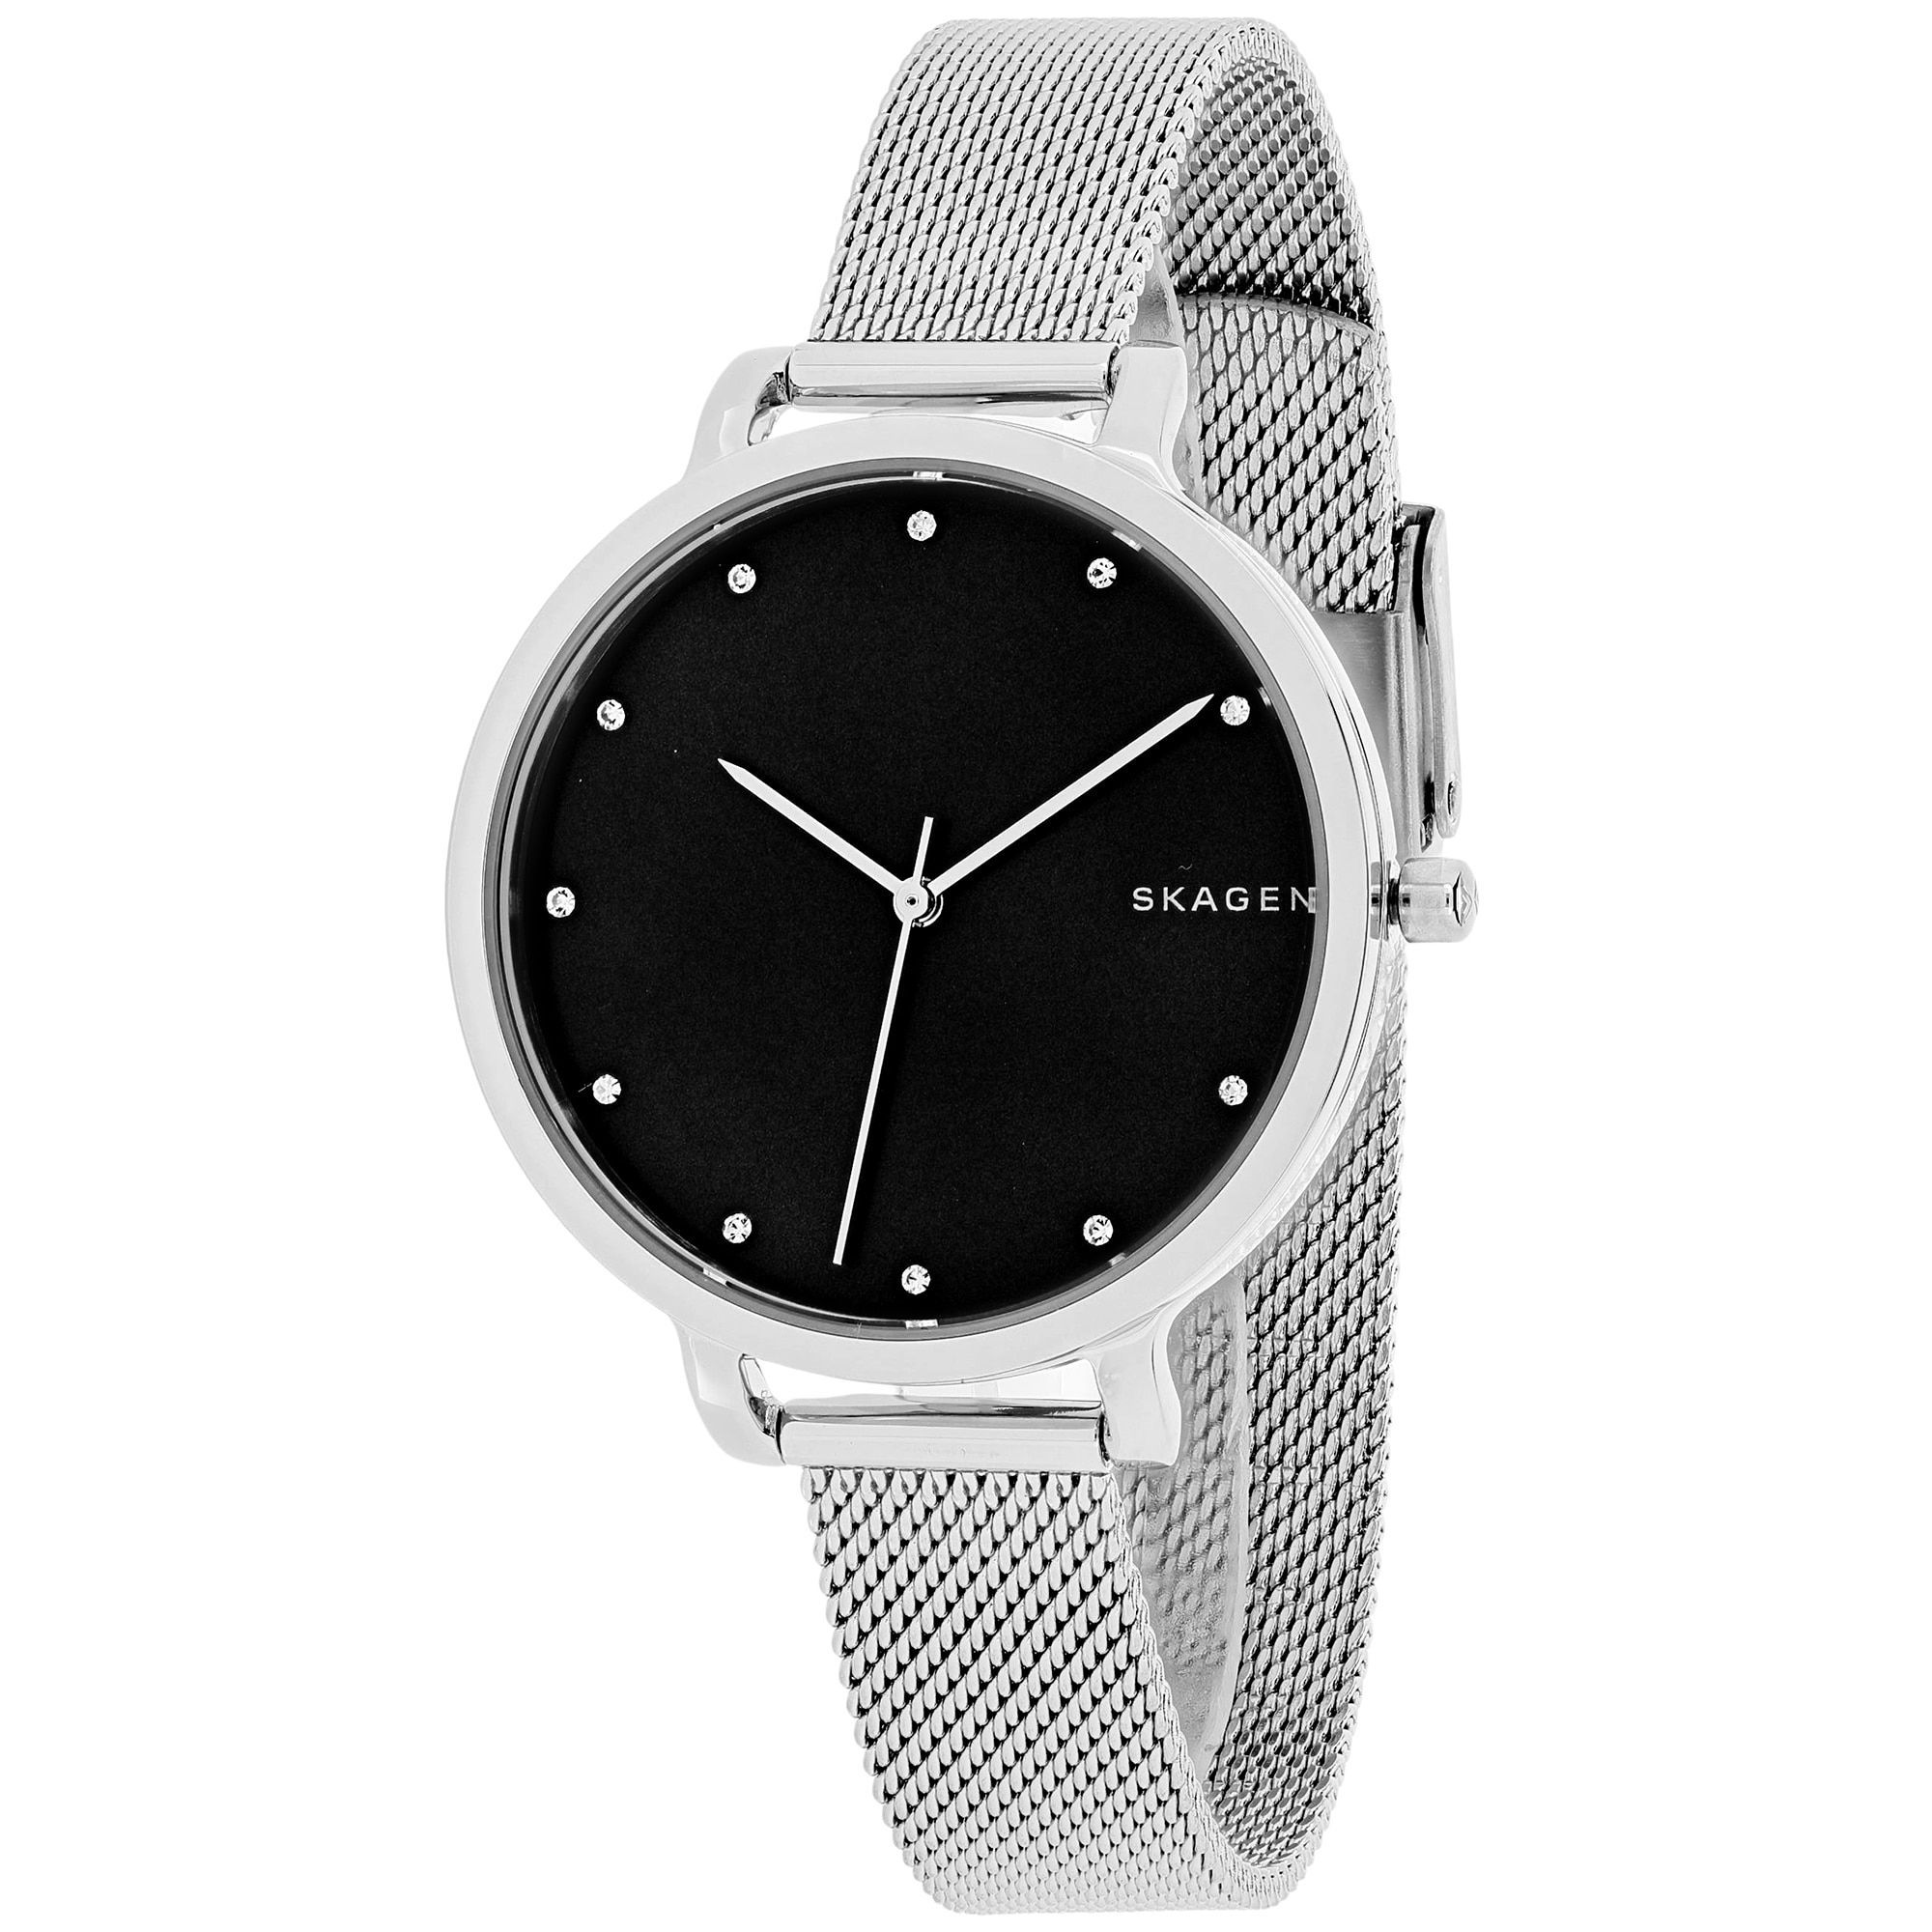 hagen skagen watches smartwatch connected hybrid